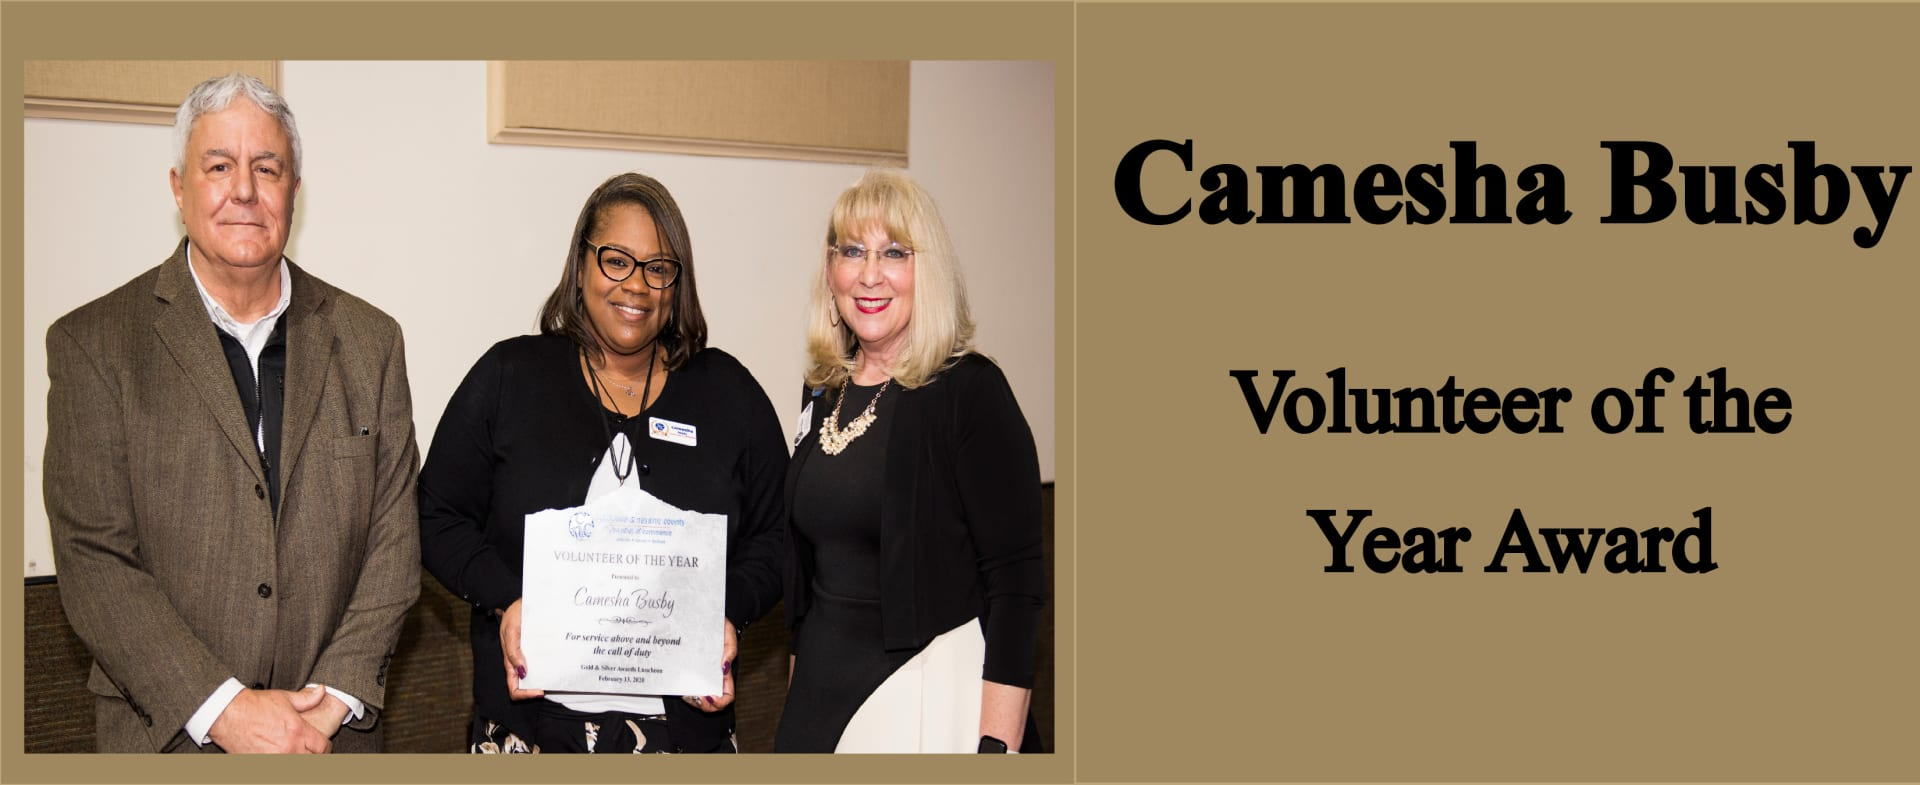 C.Busby---Volunteer-of-the-Year-w1920.jpg